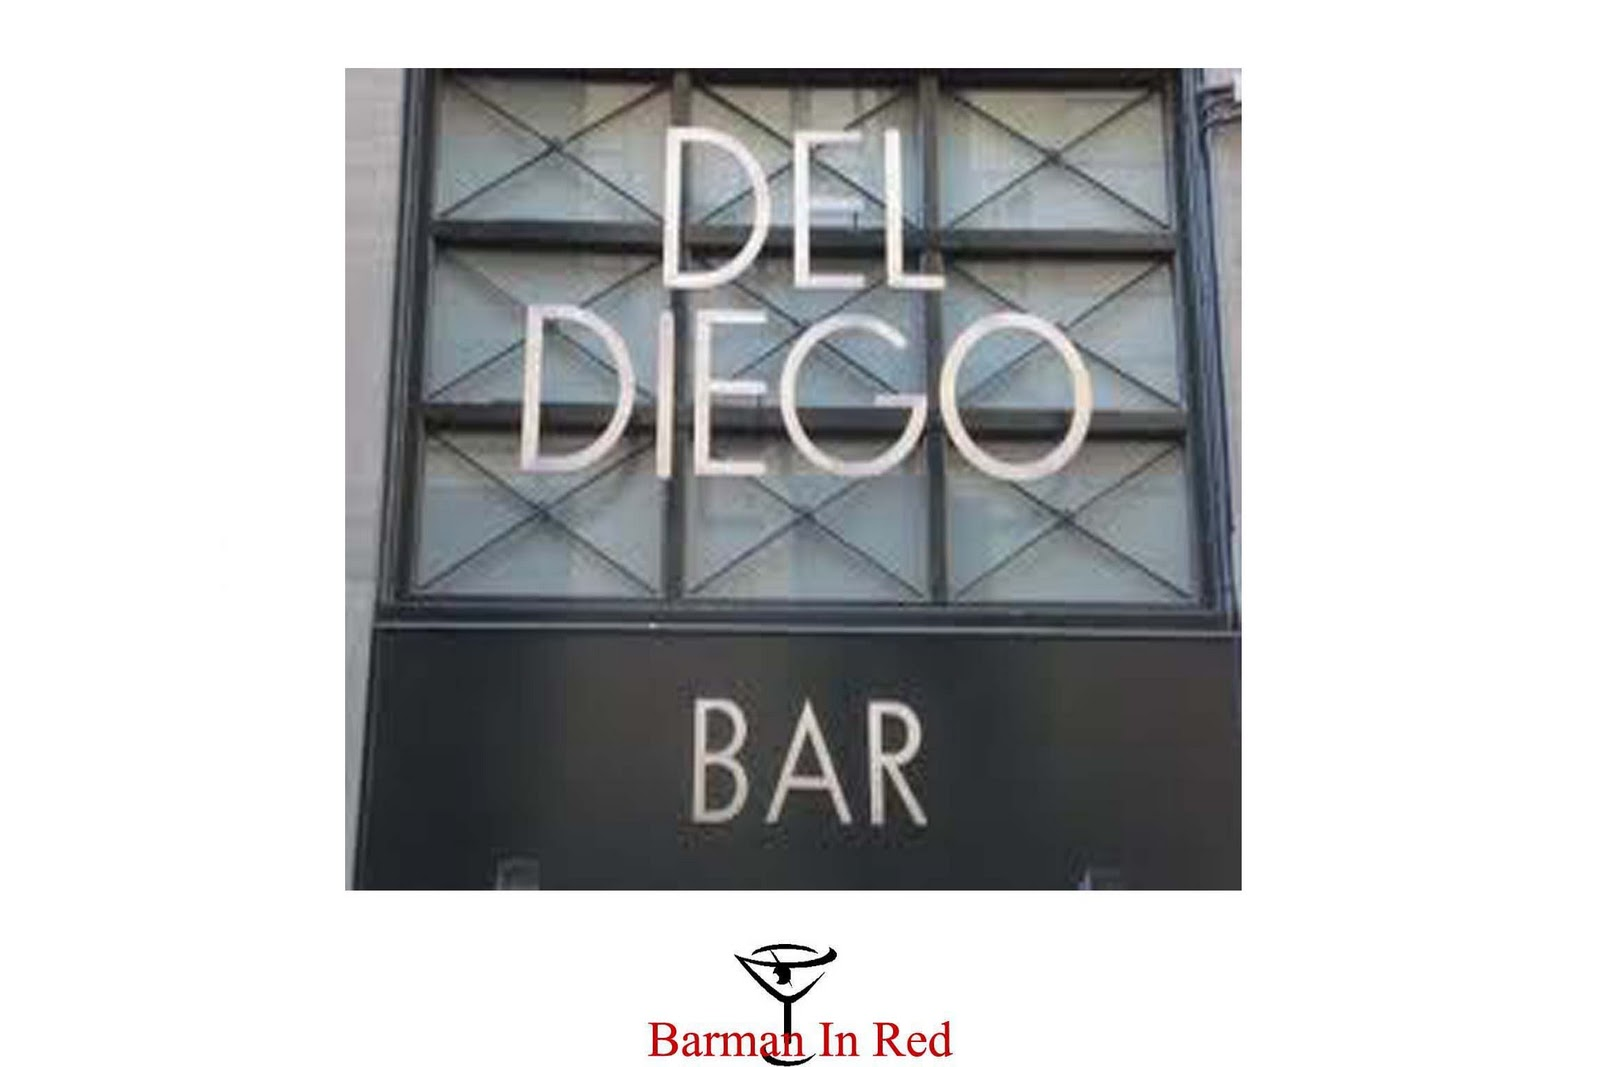 diego cocktail bar: